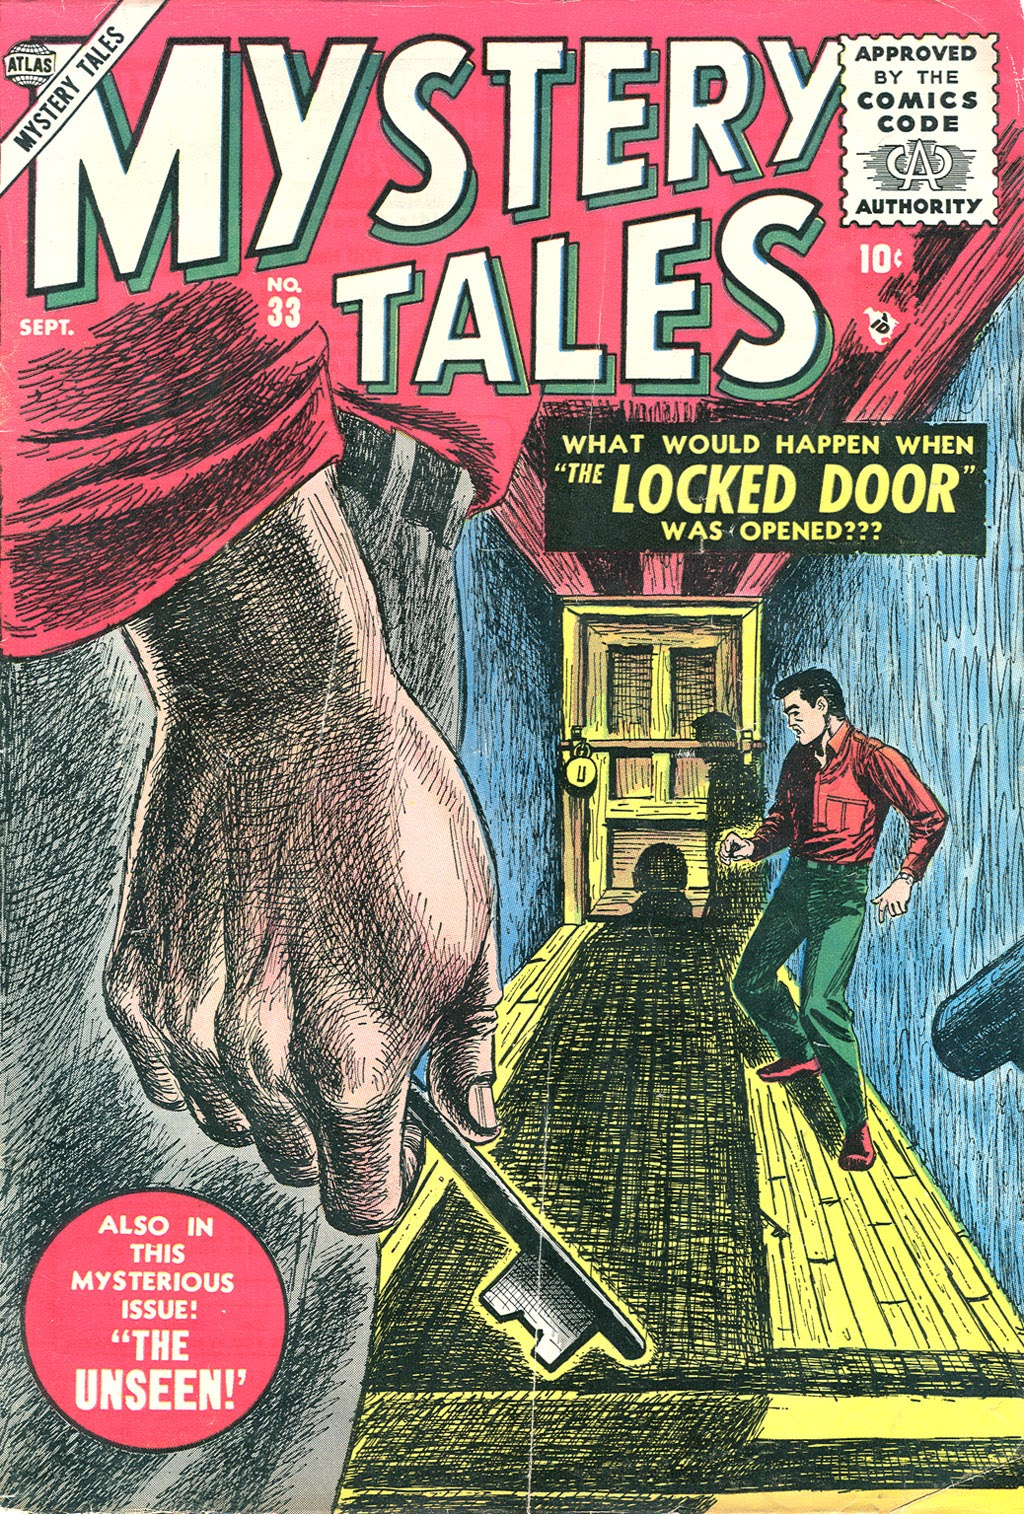 Mystery Tales 33 Page 1